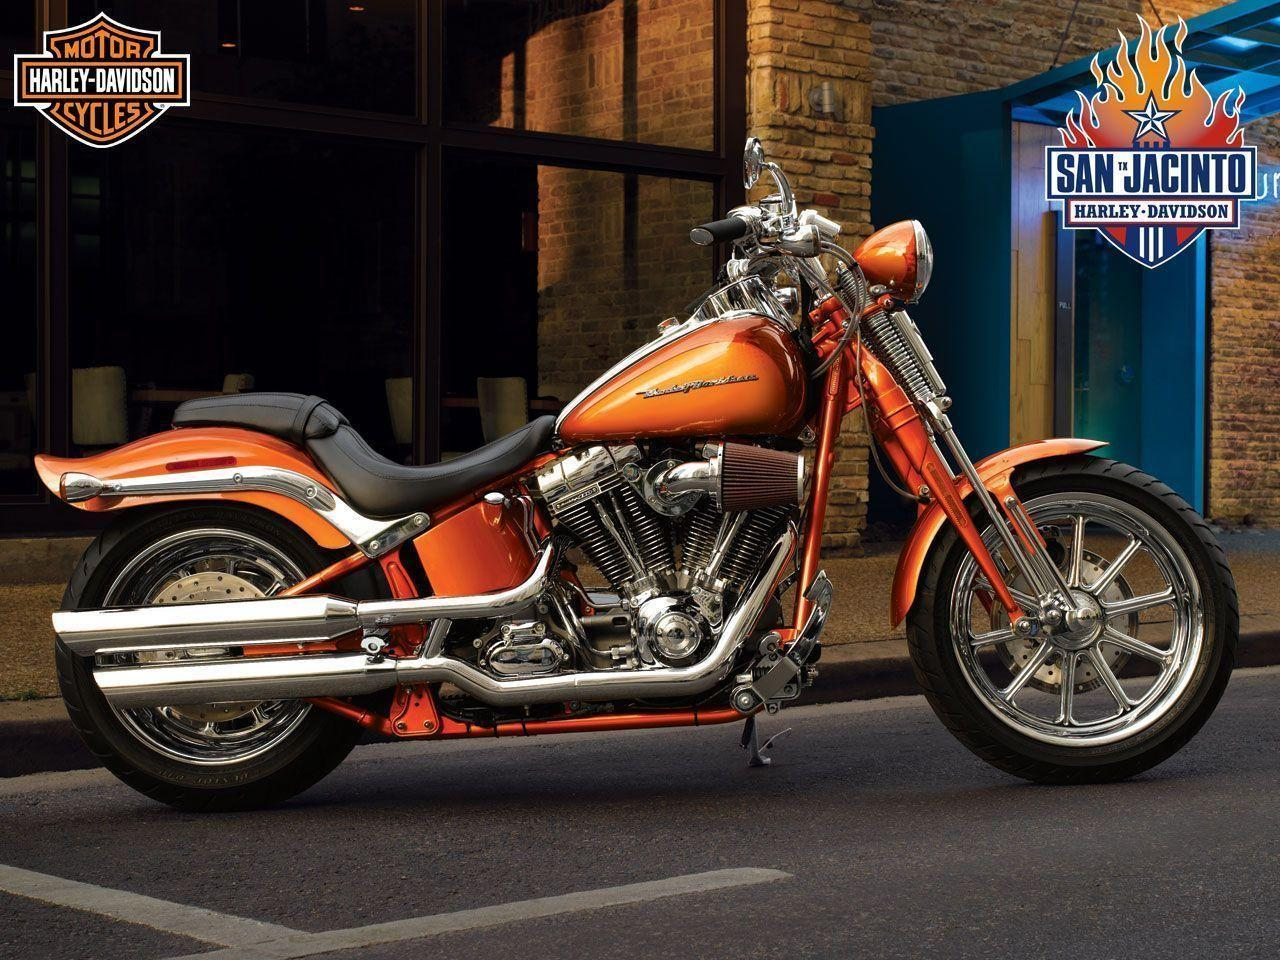 Free harley davidson wallpapers wallpaper cave - Old school harley davidson wallpaper ...